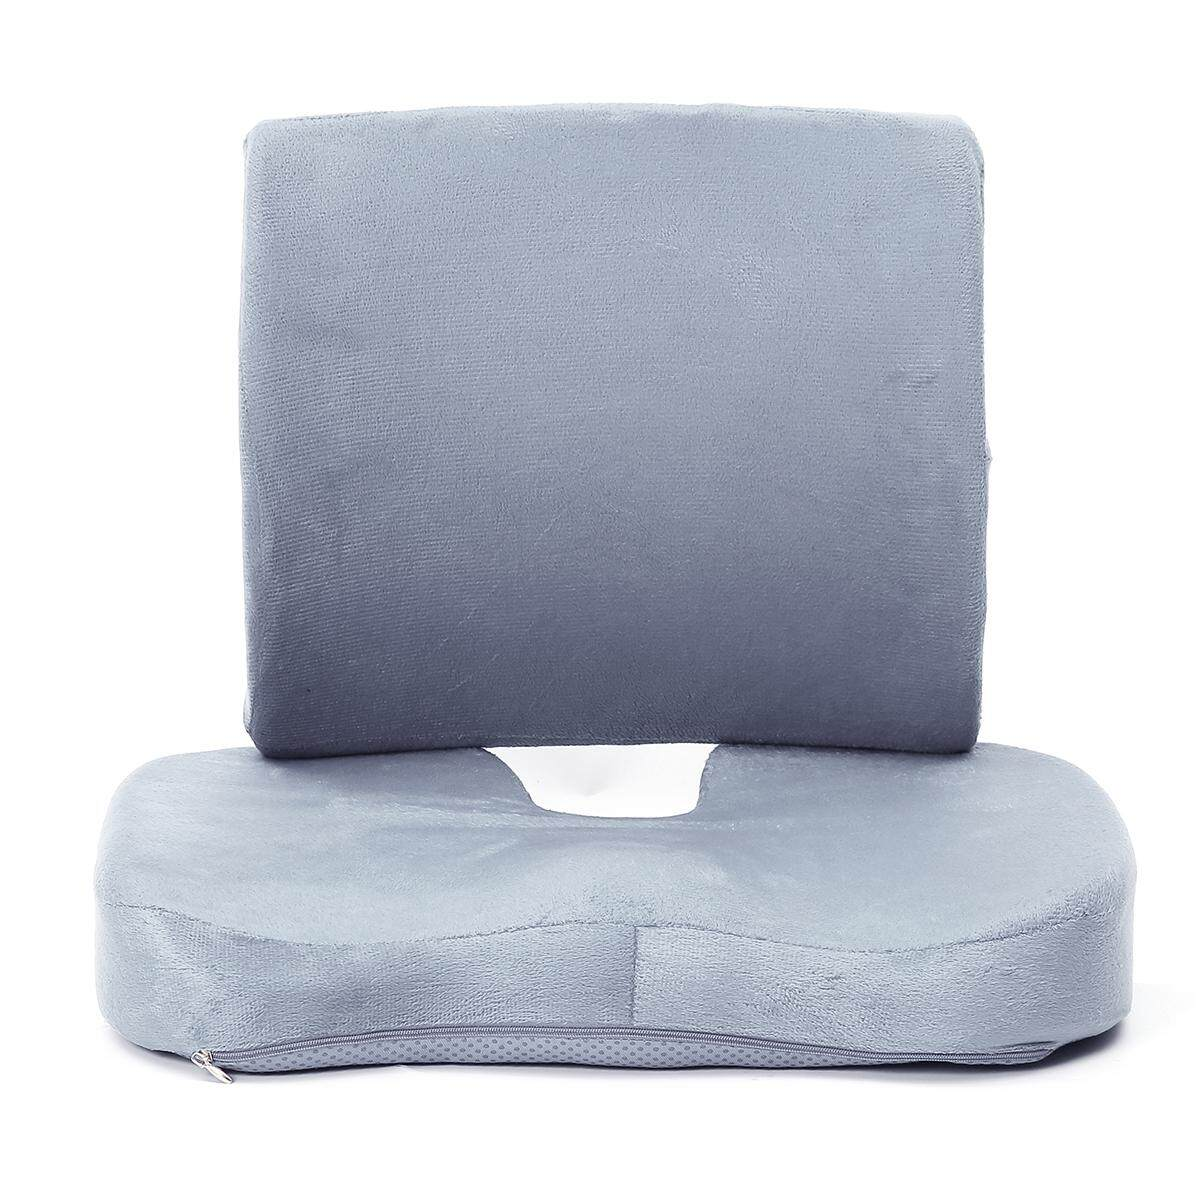 Memory Foam Seat Cushion Lumbar Back Support Orthoped Car Office Pain Relief - intl